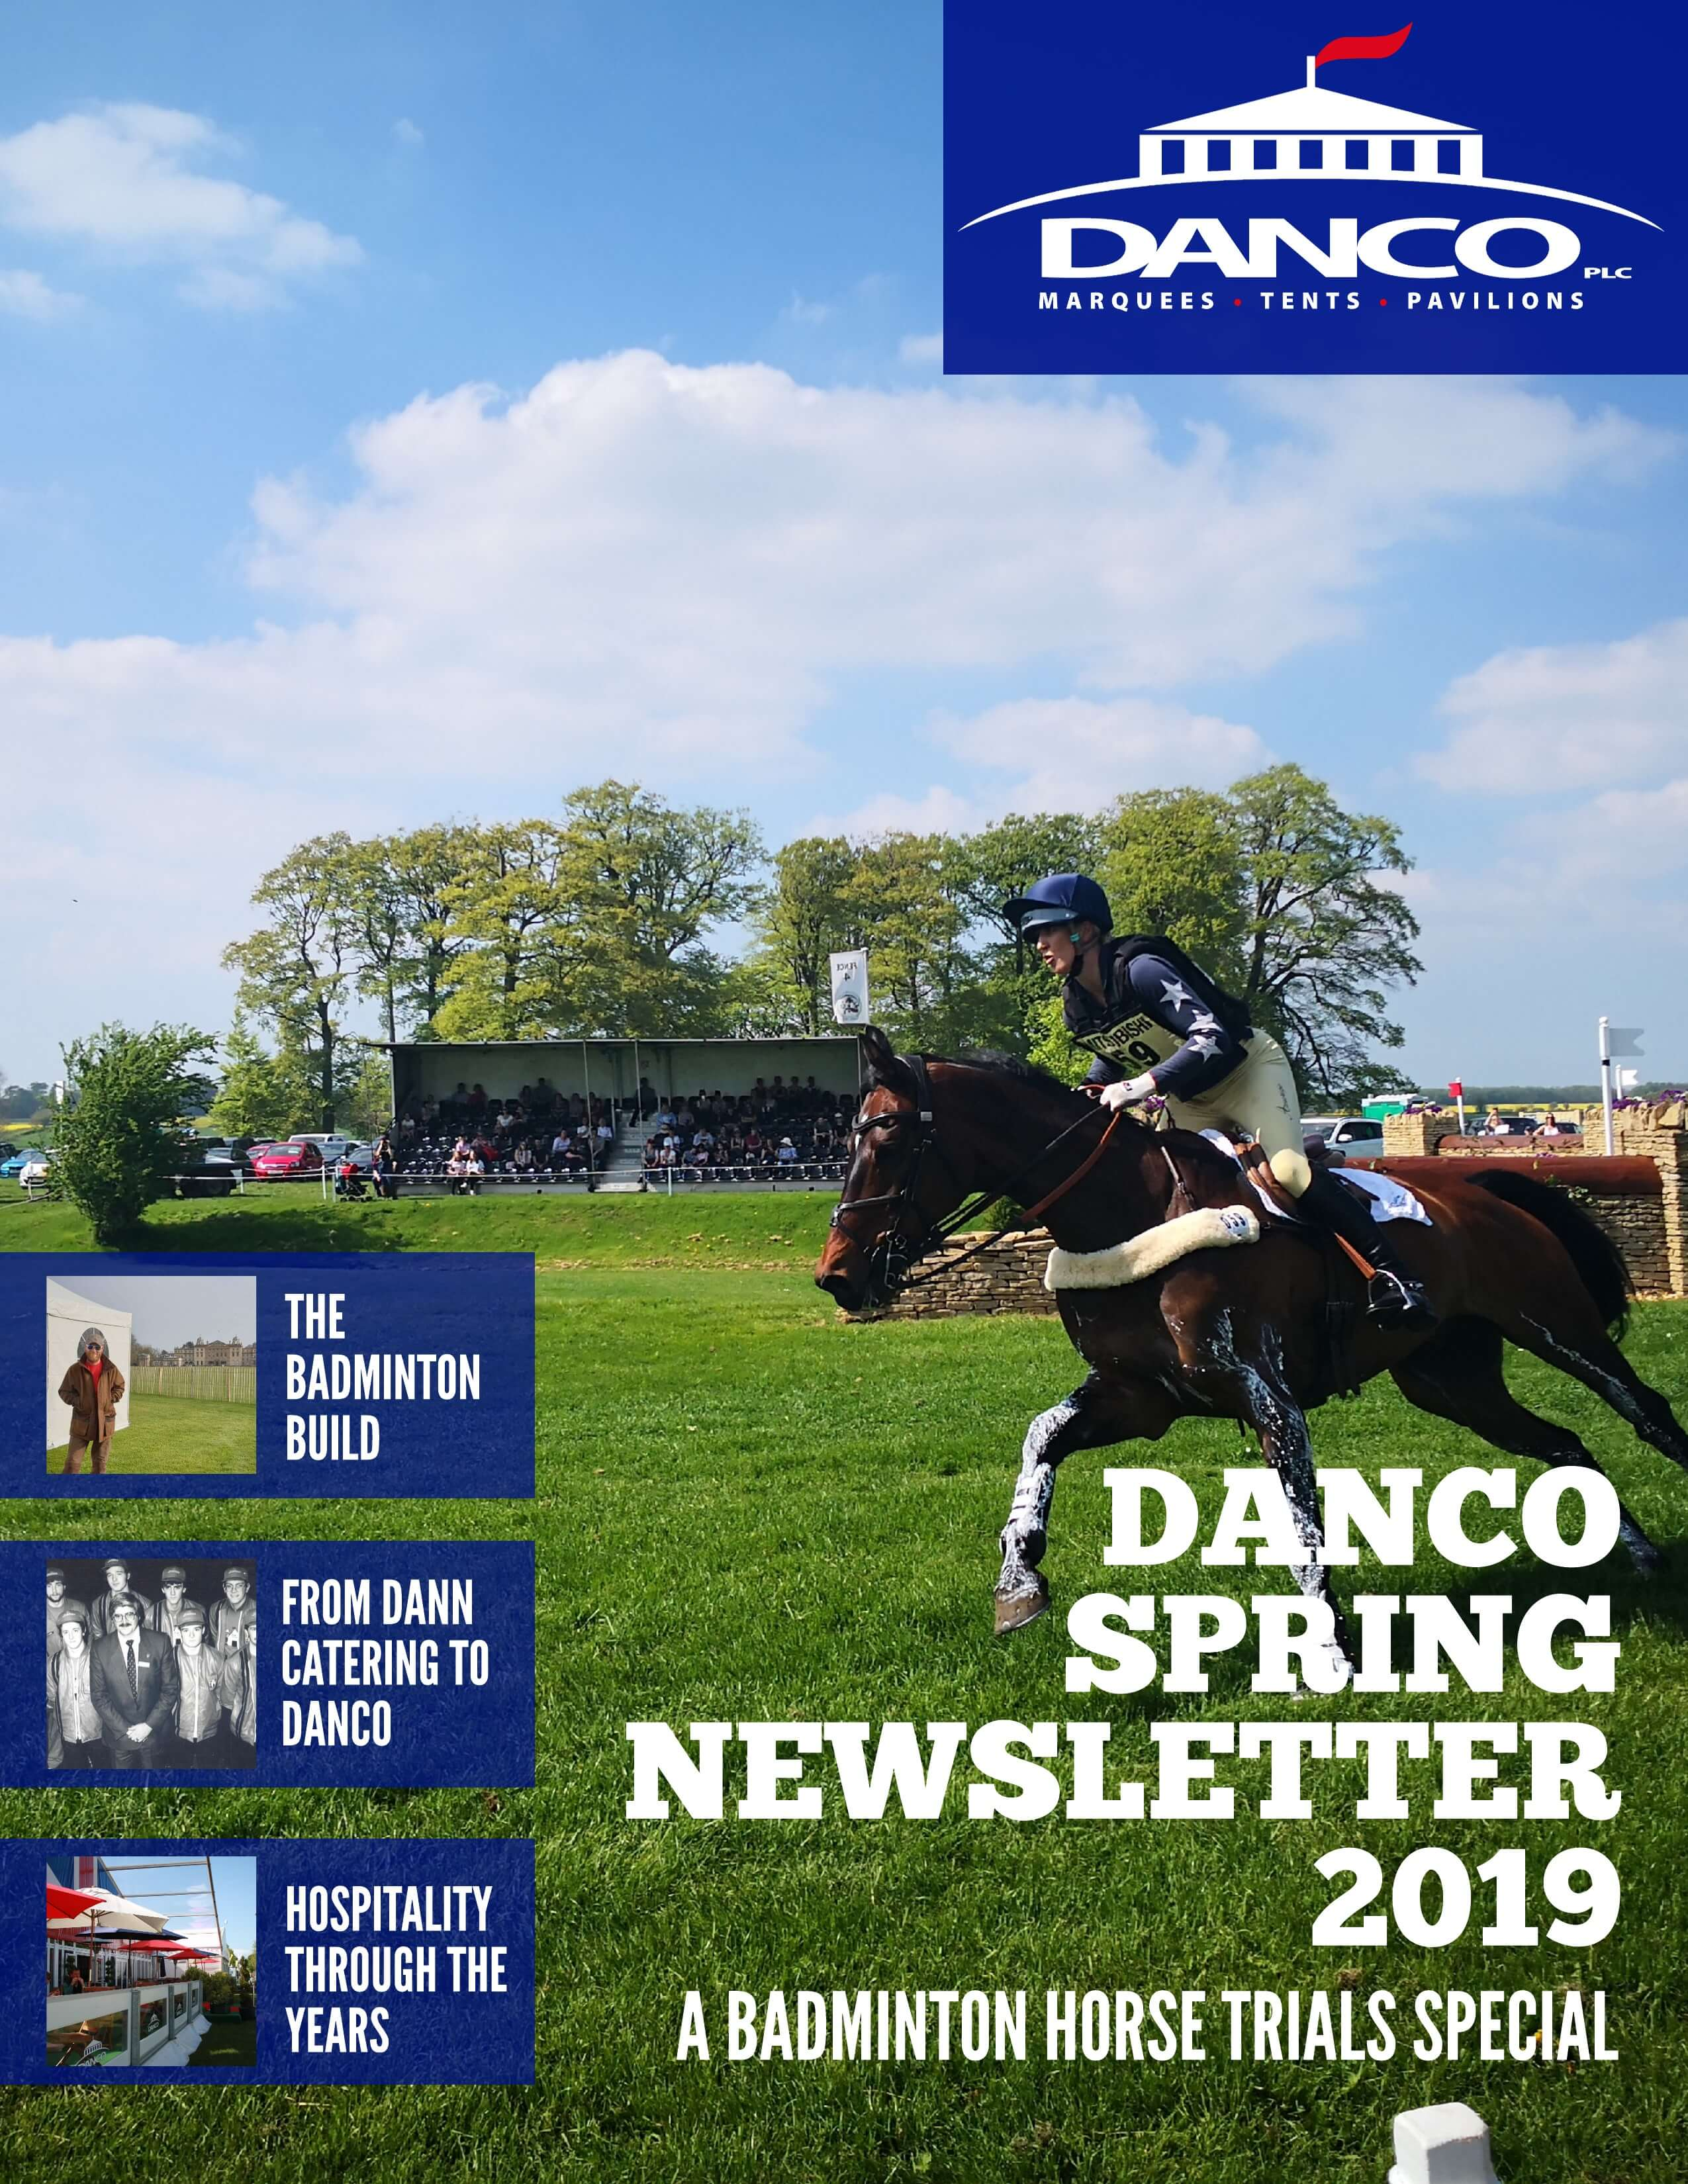 Danco Spring Newsletter 2019